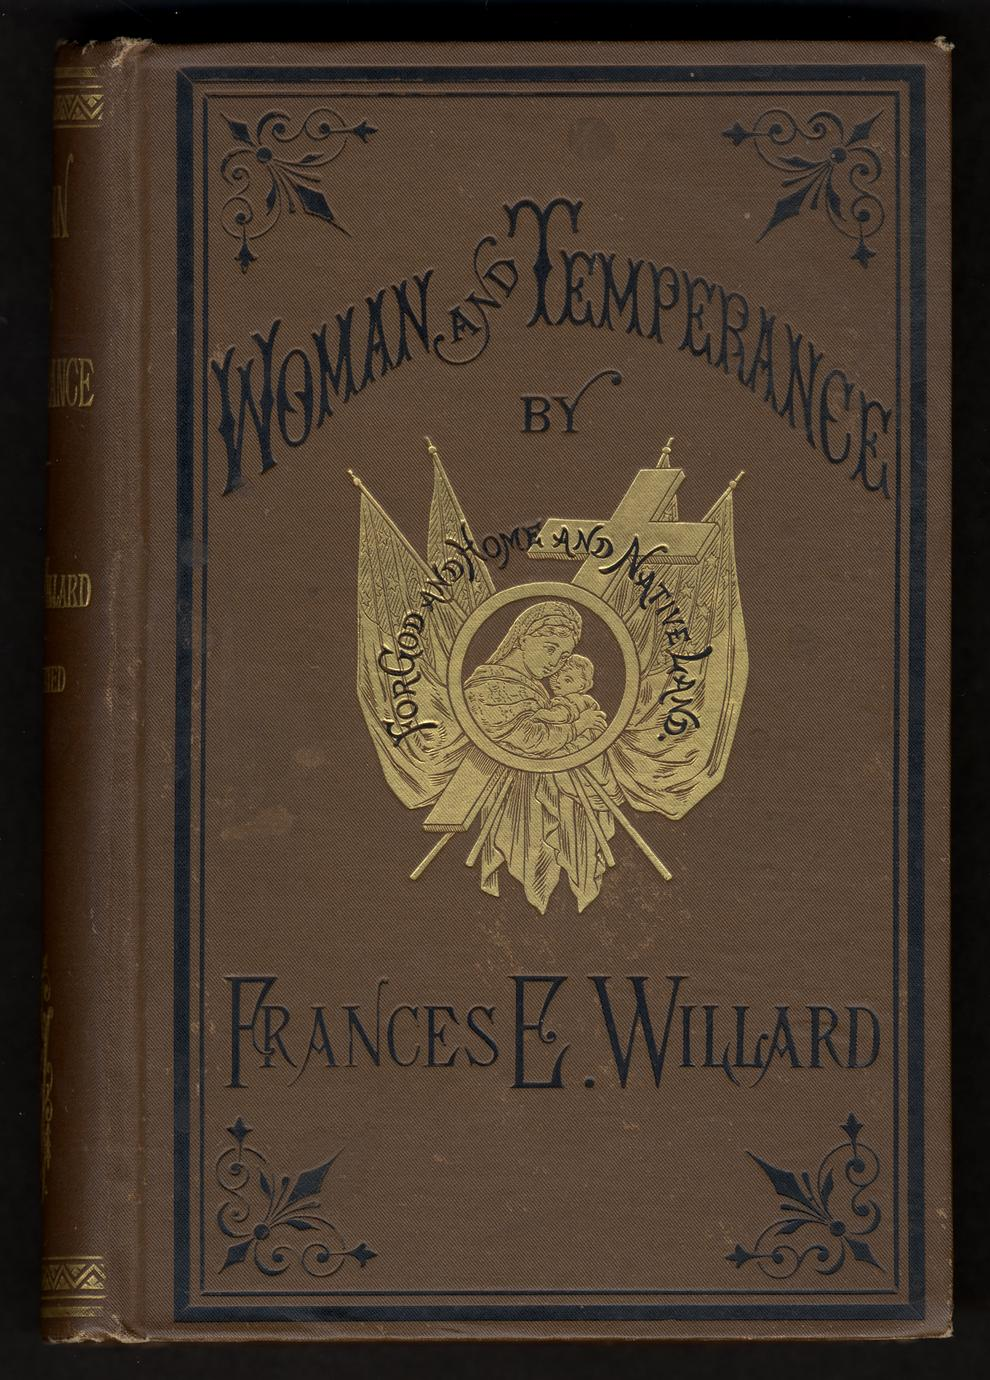 Woman and temperance : or, the work and workers of the Woman's Christian Temperance Union (1 of 4)